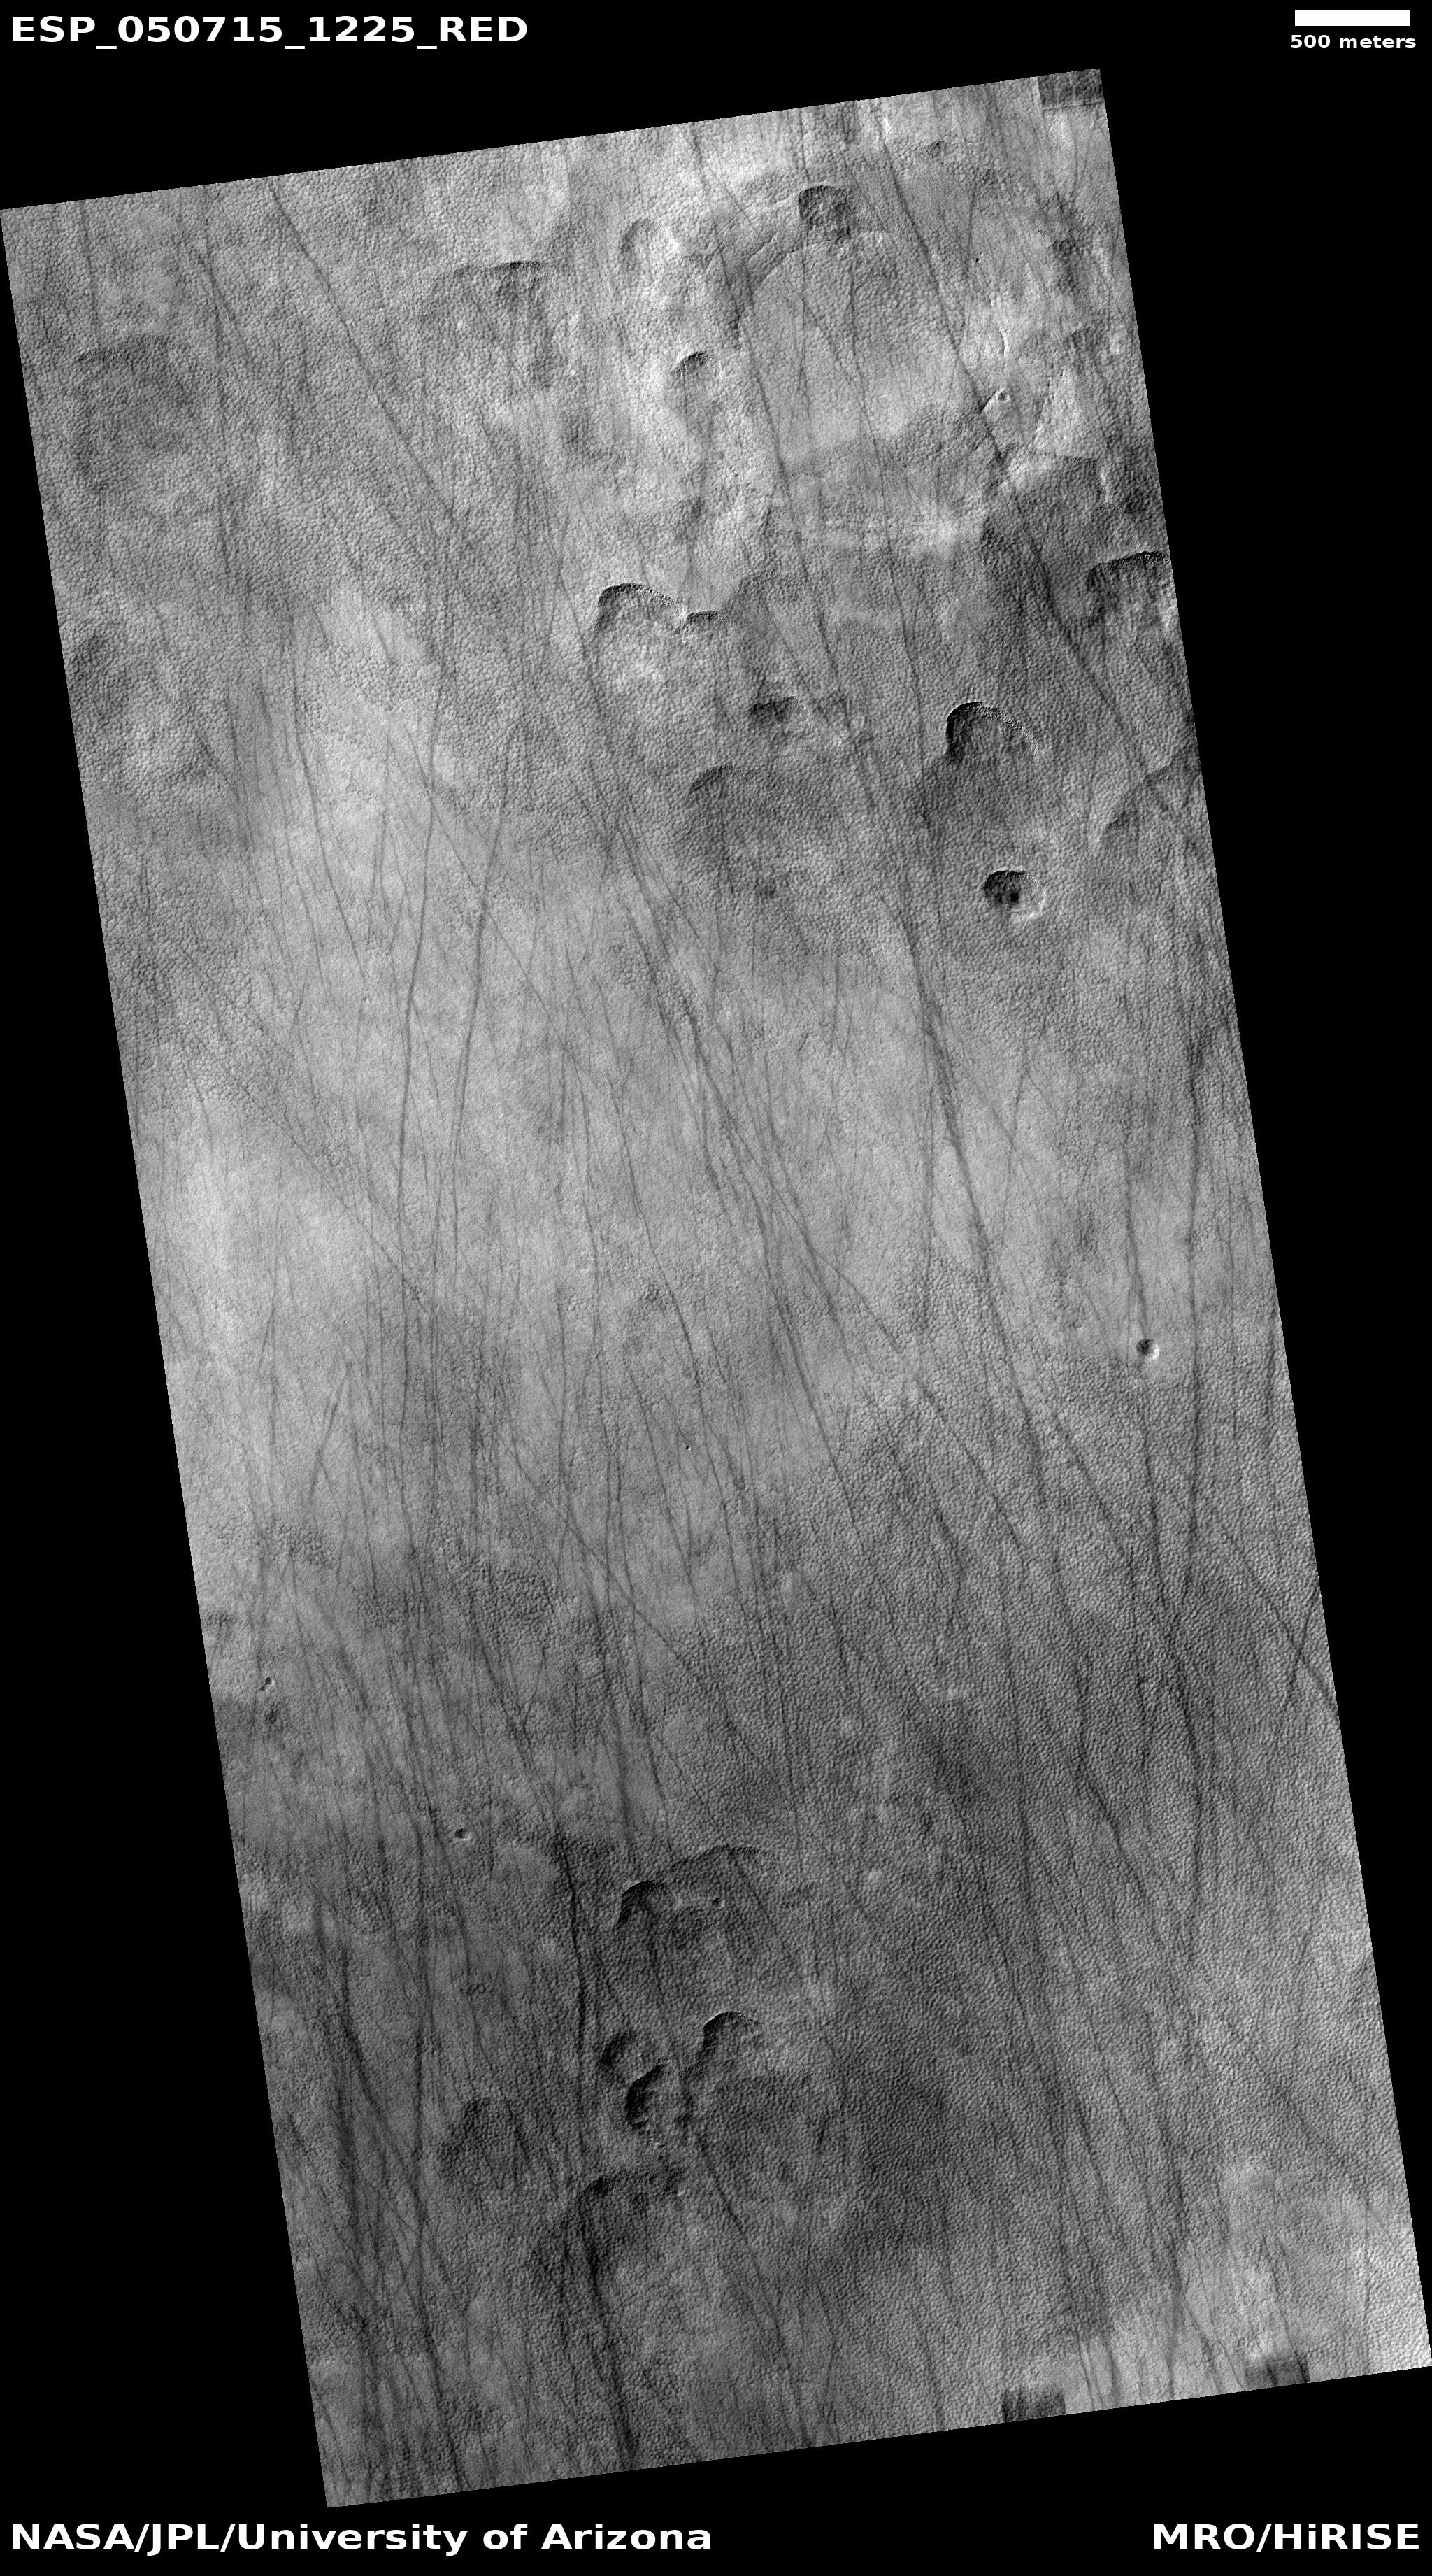 Dust devil tracks and scalloped topography, as seen by HiRISE under HiWish program